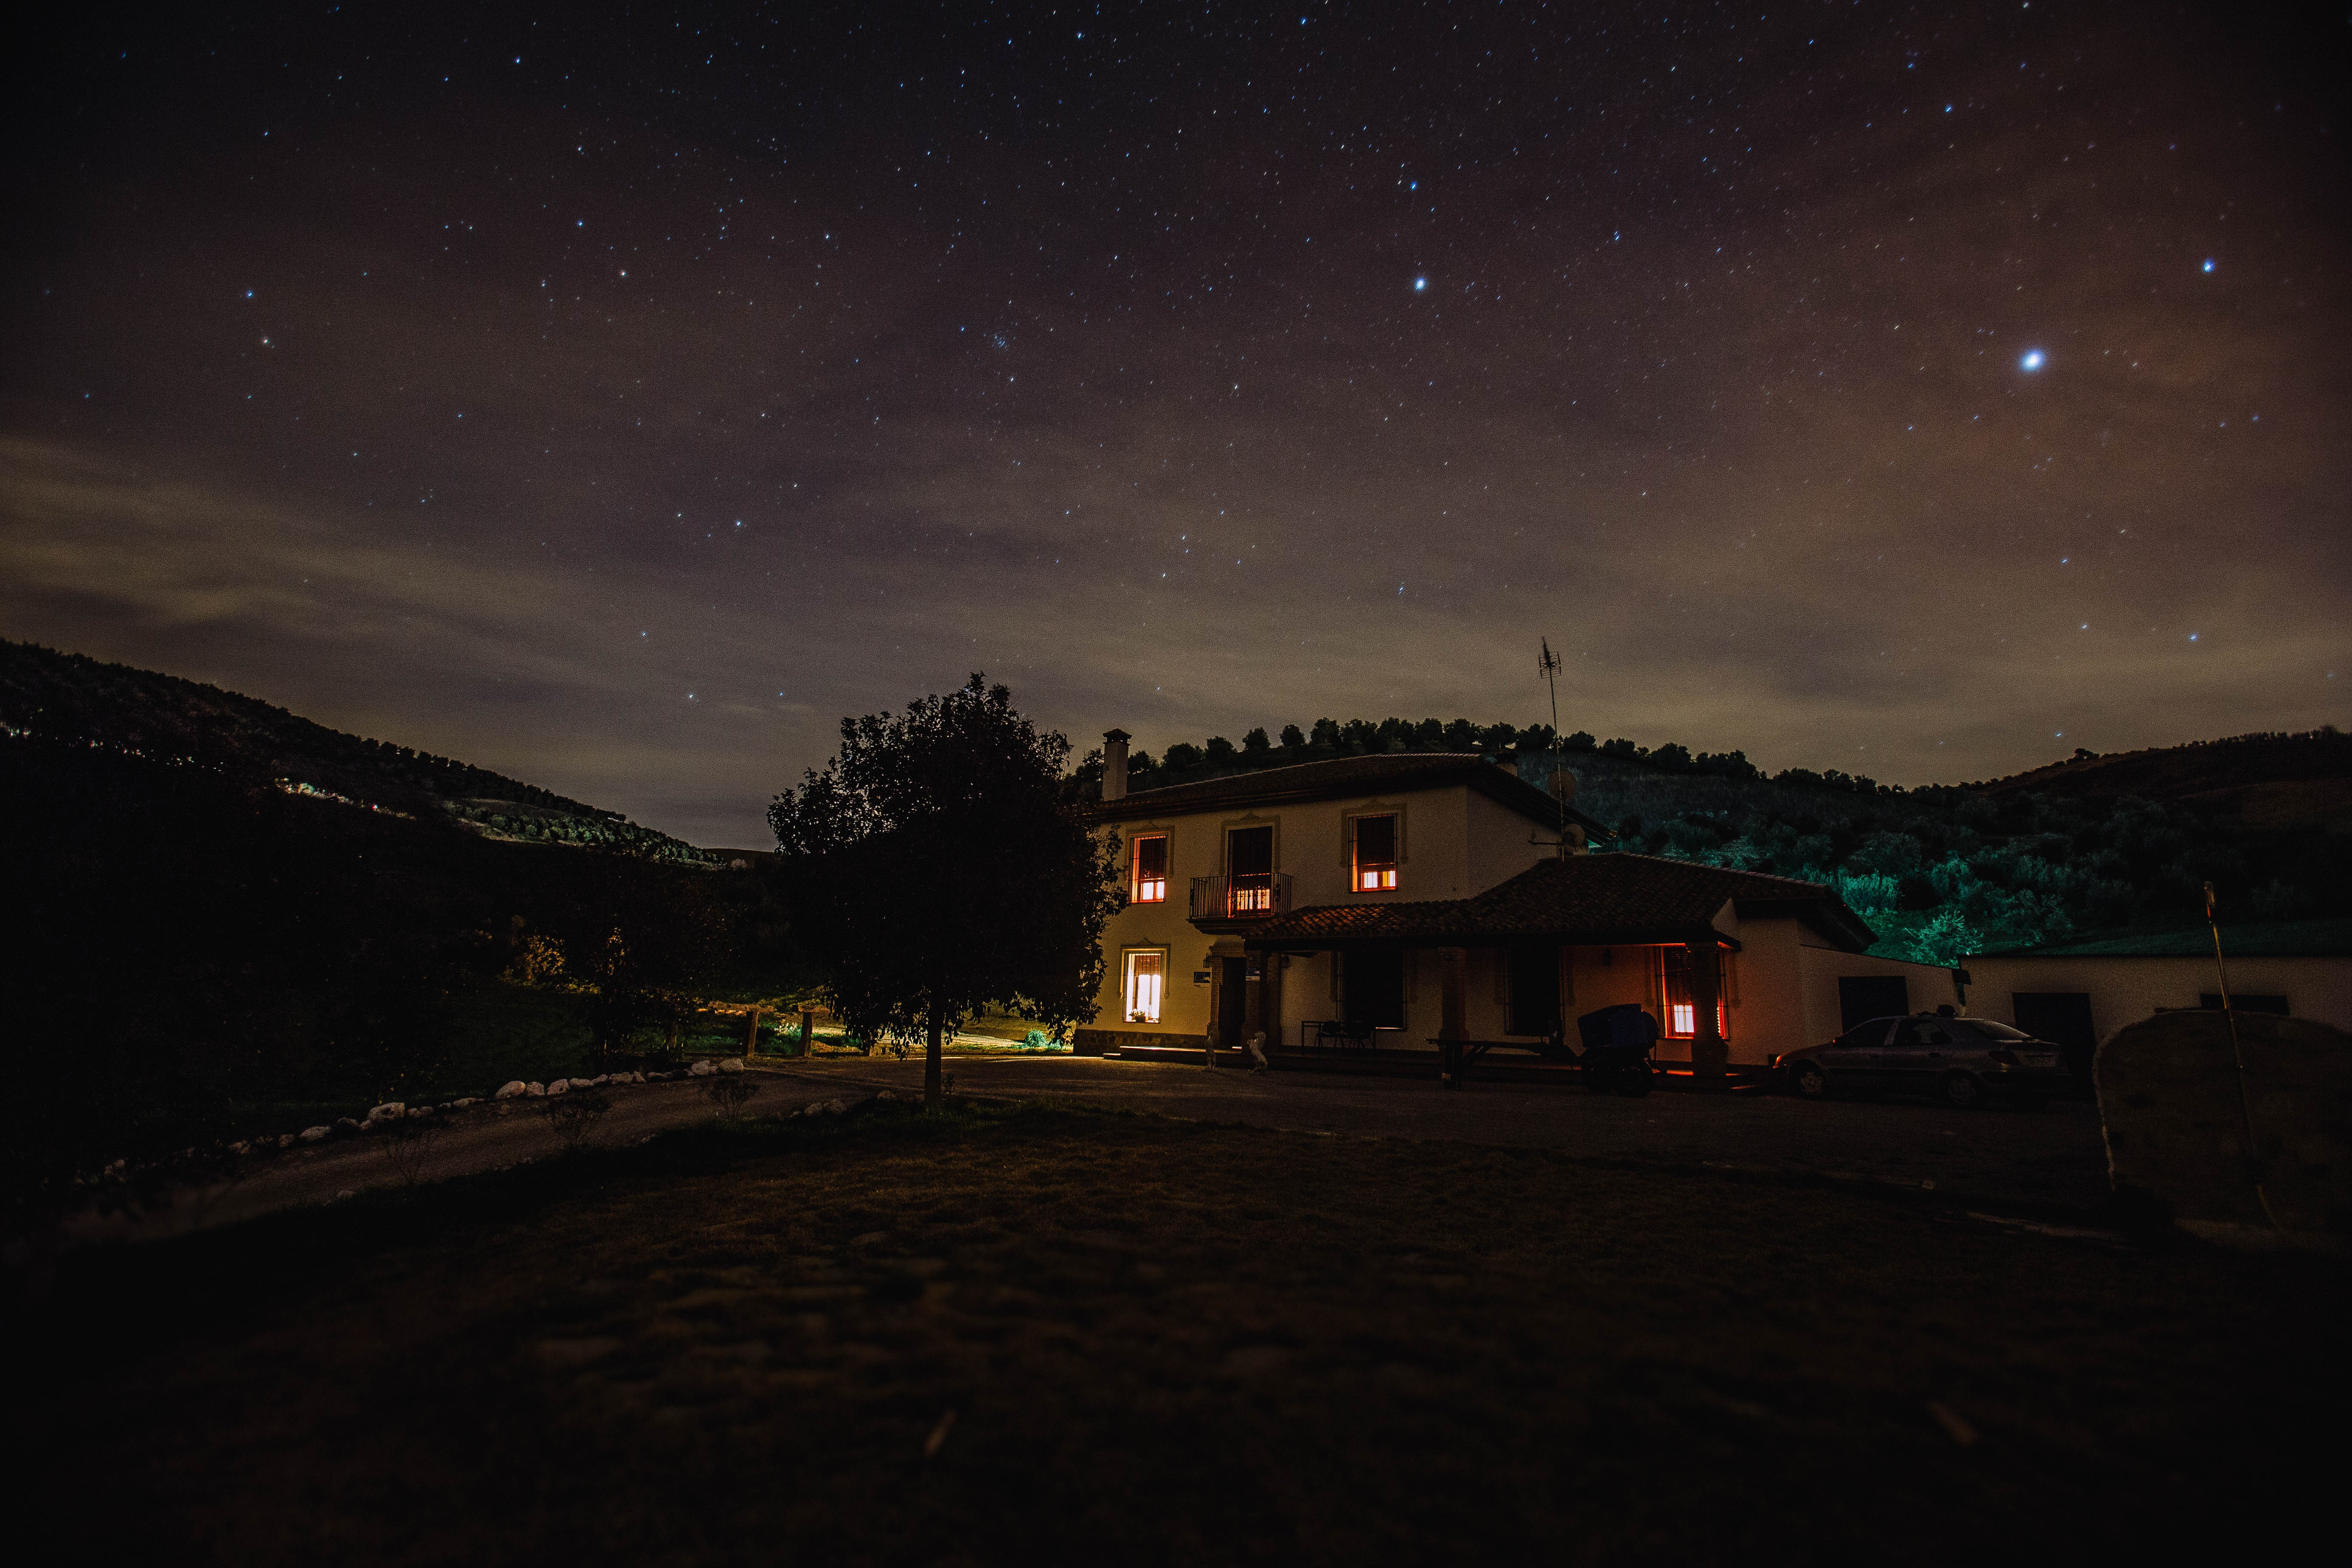 House with light during nighttime photo